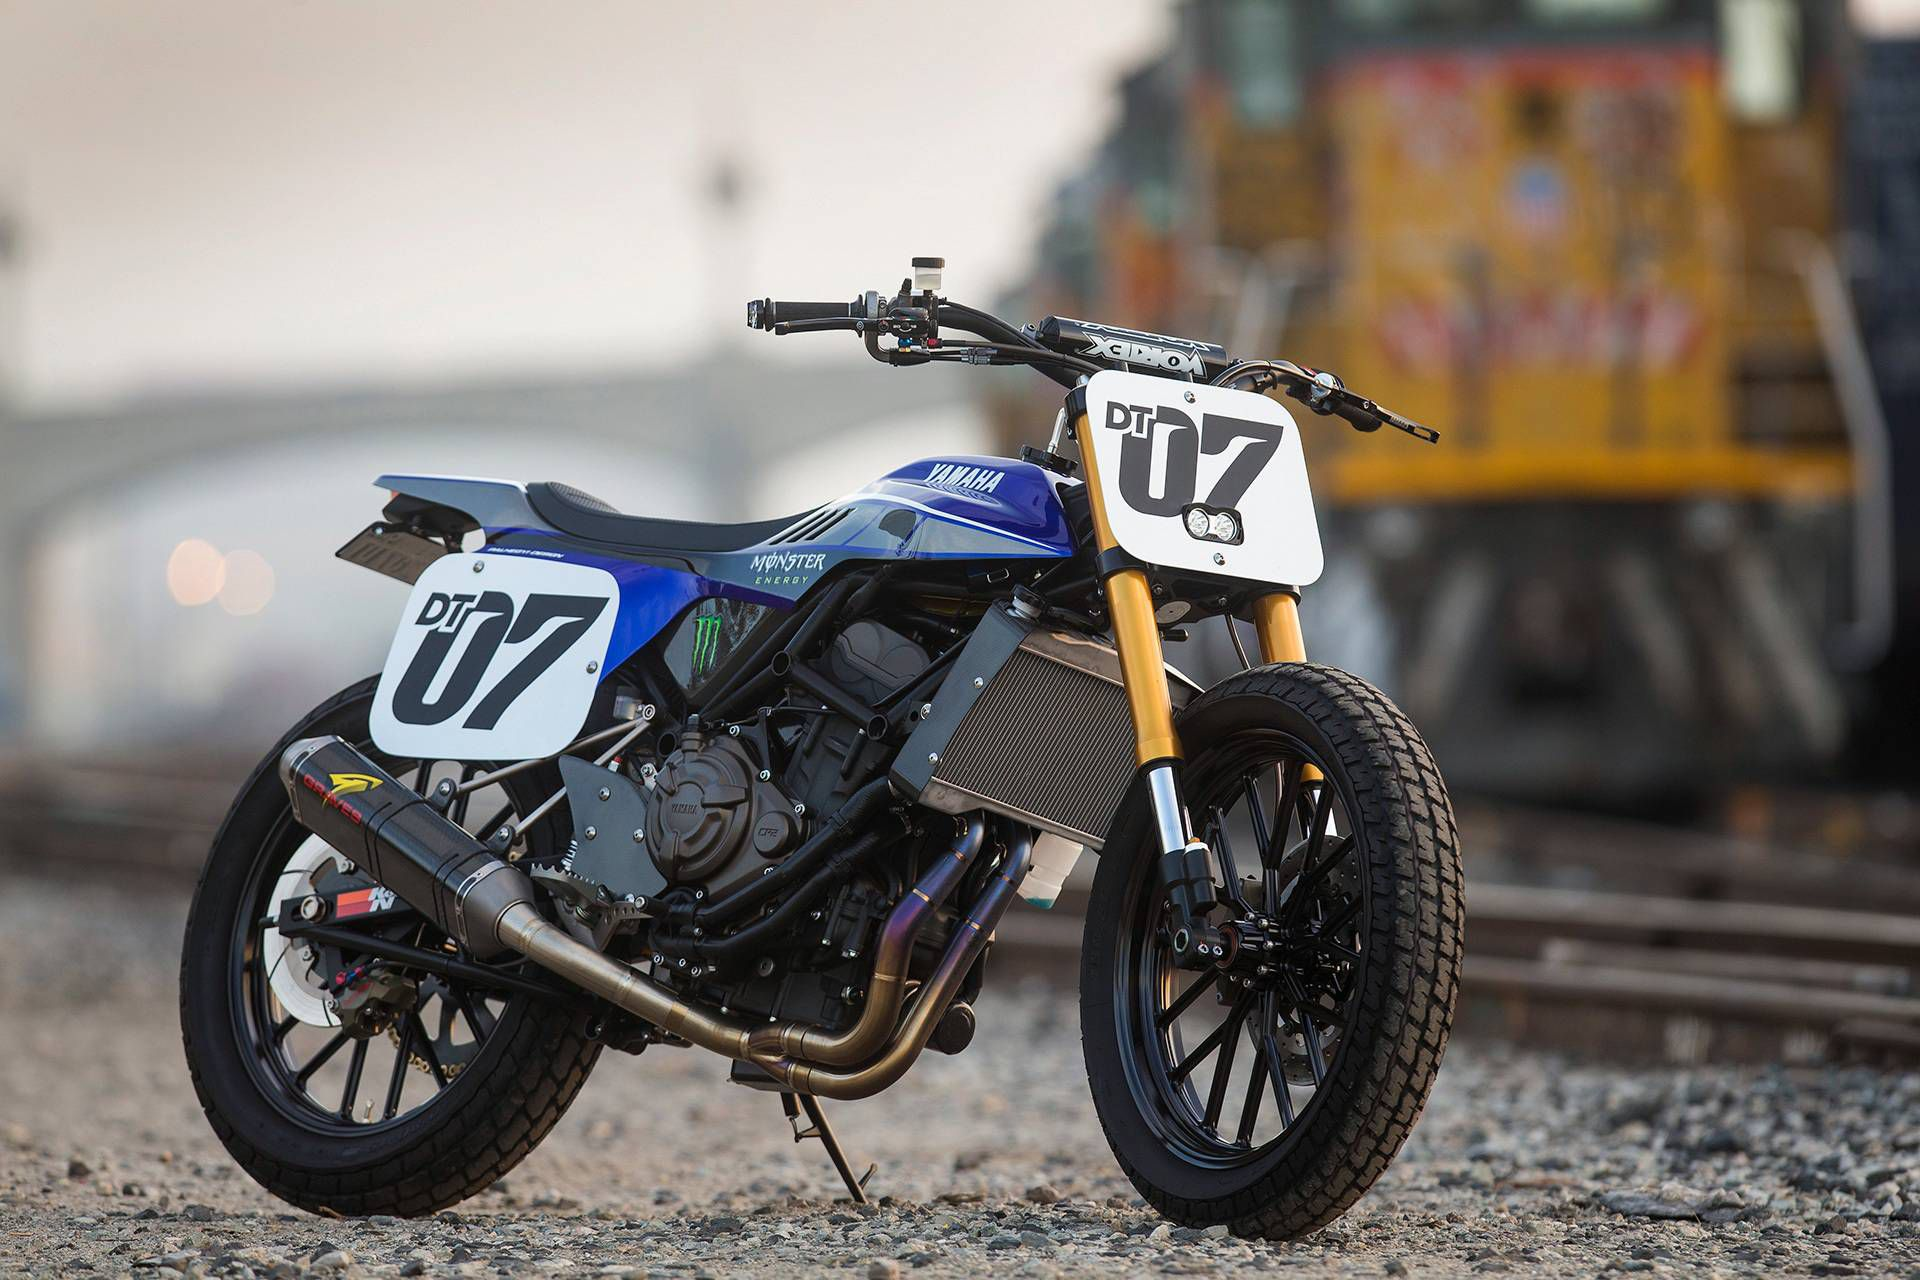 Yamaha YZF-R1-Powered R1DT Prototype Dirt-Track Racer